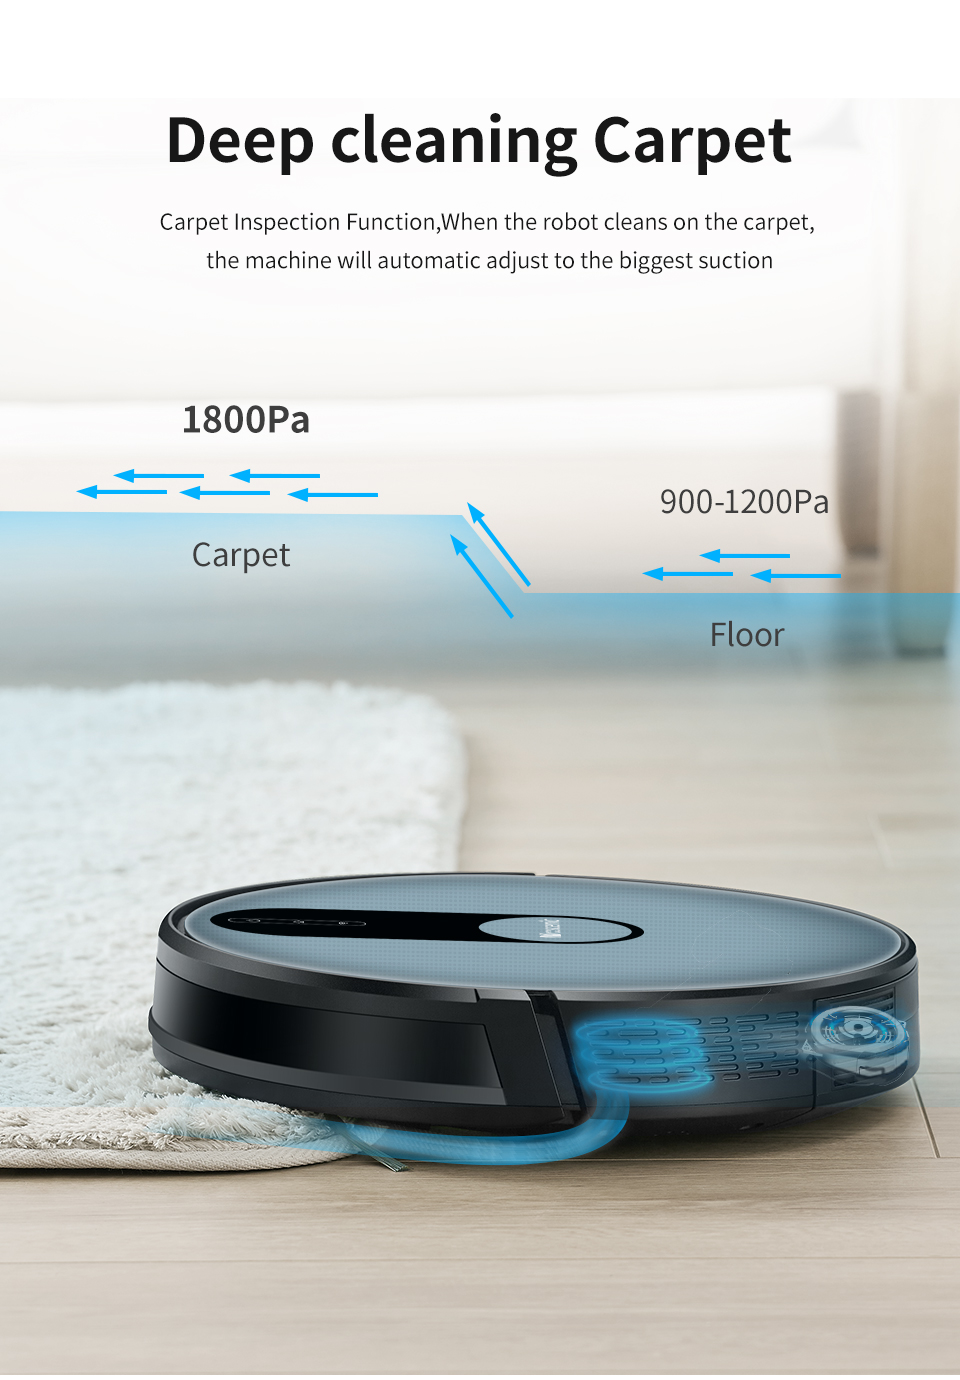 H1780ef81cf504233ac4ef20e1a62ebebw Proscenic 820P Robot Vacuum Cleaner Smart Planned 1800Pa Suction with wet cleaning for Home Carpet Cleaner Washing Smart Robot